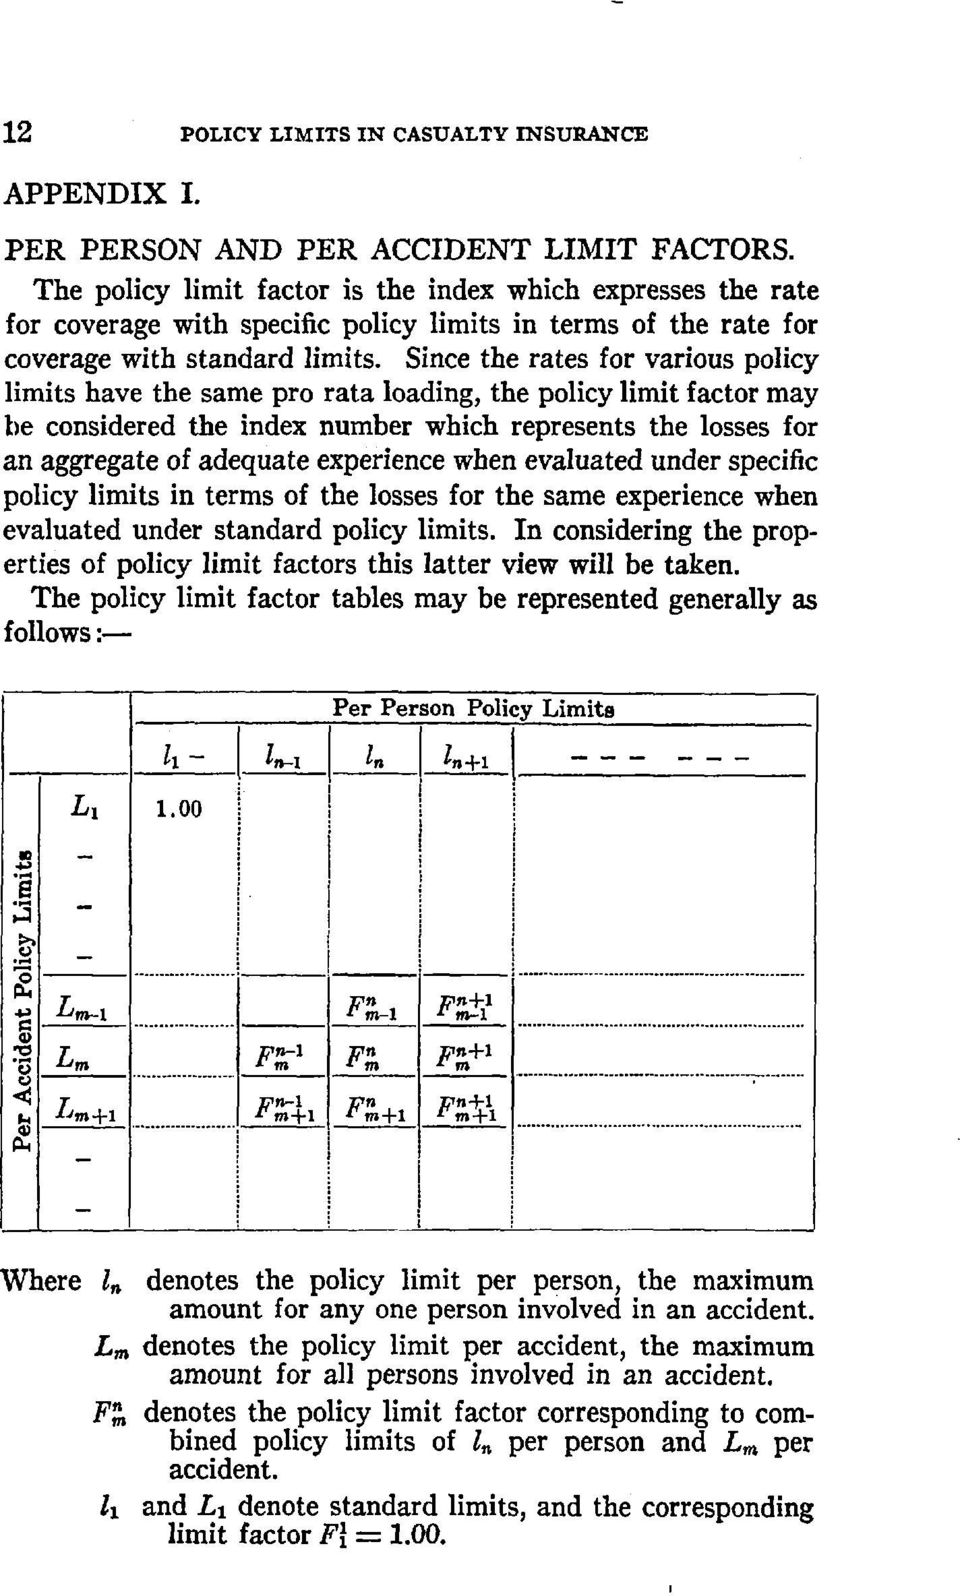 Since the rates for various policy limits have the same pro rata loading, the policy limit factor may be considered the index number which represents the losses for an aggregate of adequate